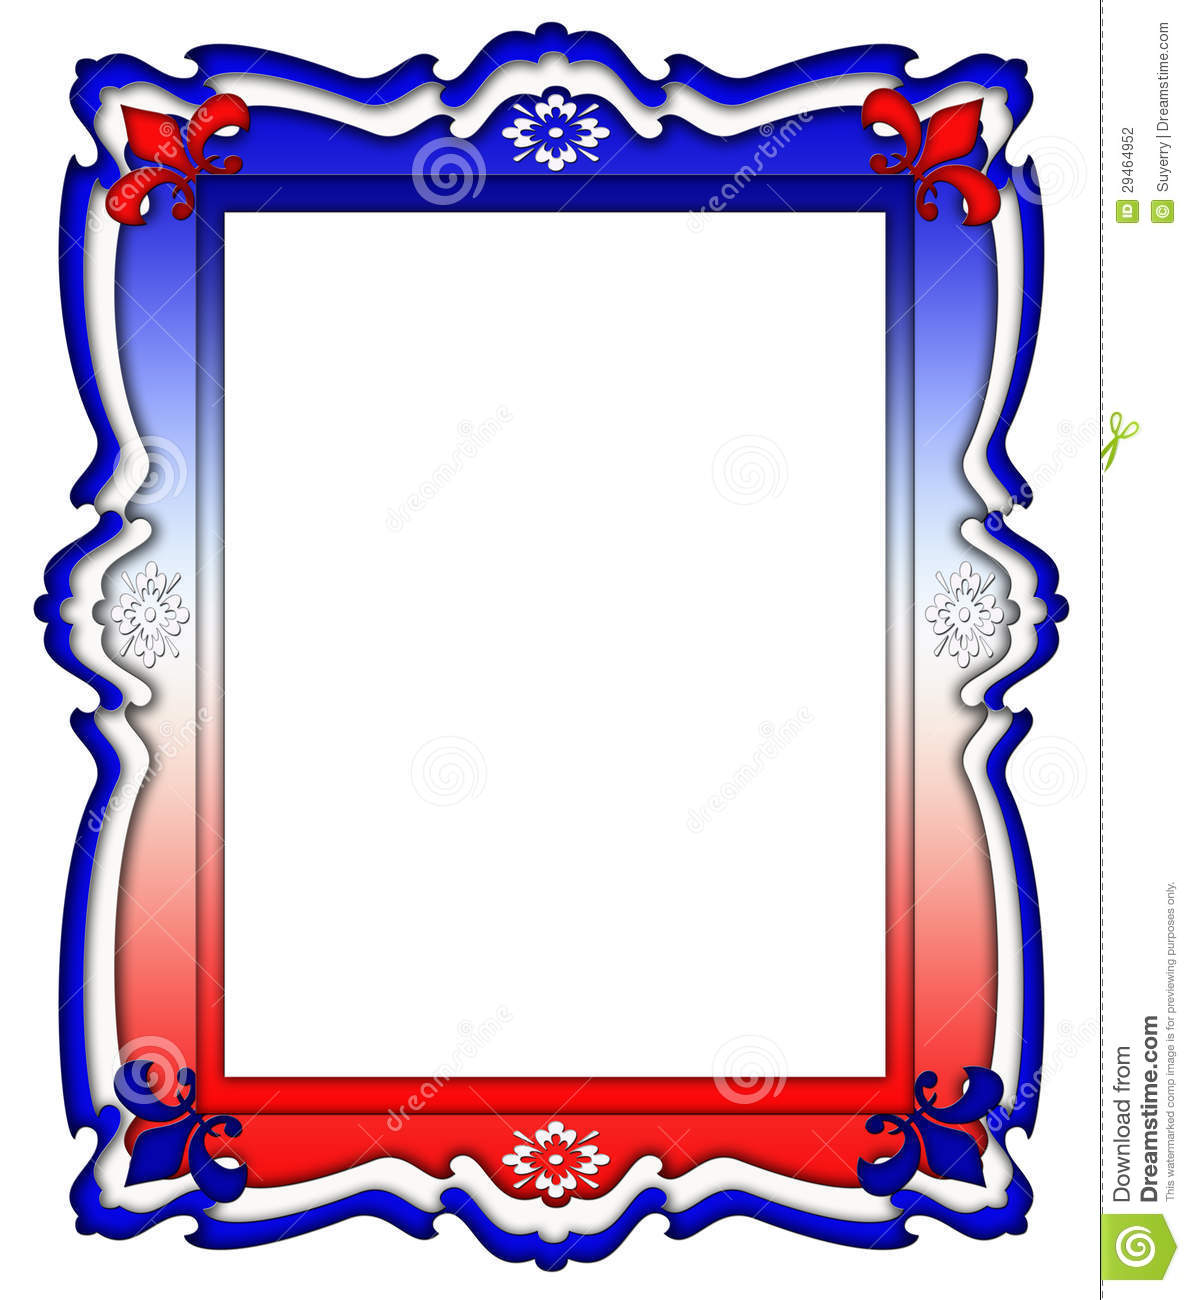 Red White And Blue Frame Border Stock Photo Illustration Of